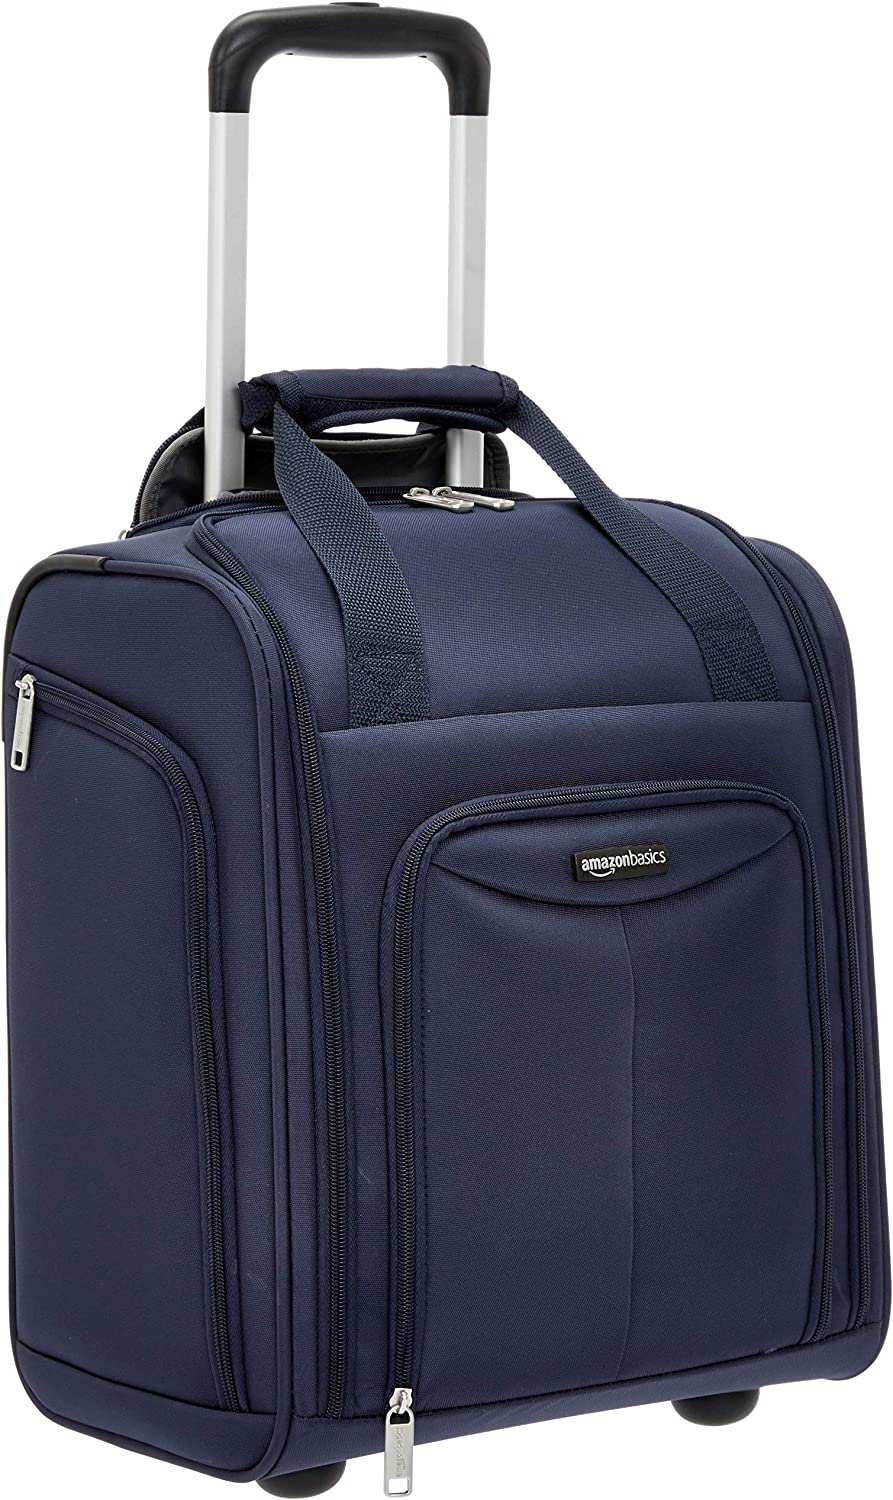 AmazonBasics Large Underseat Spinner Luggage Suitcase with Wheels